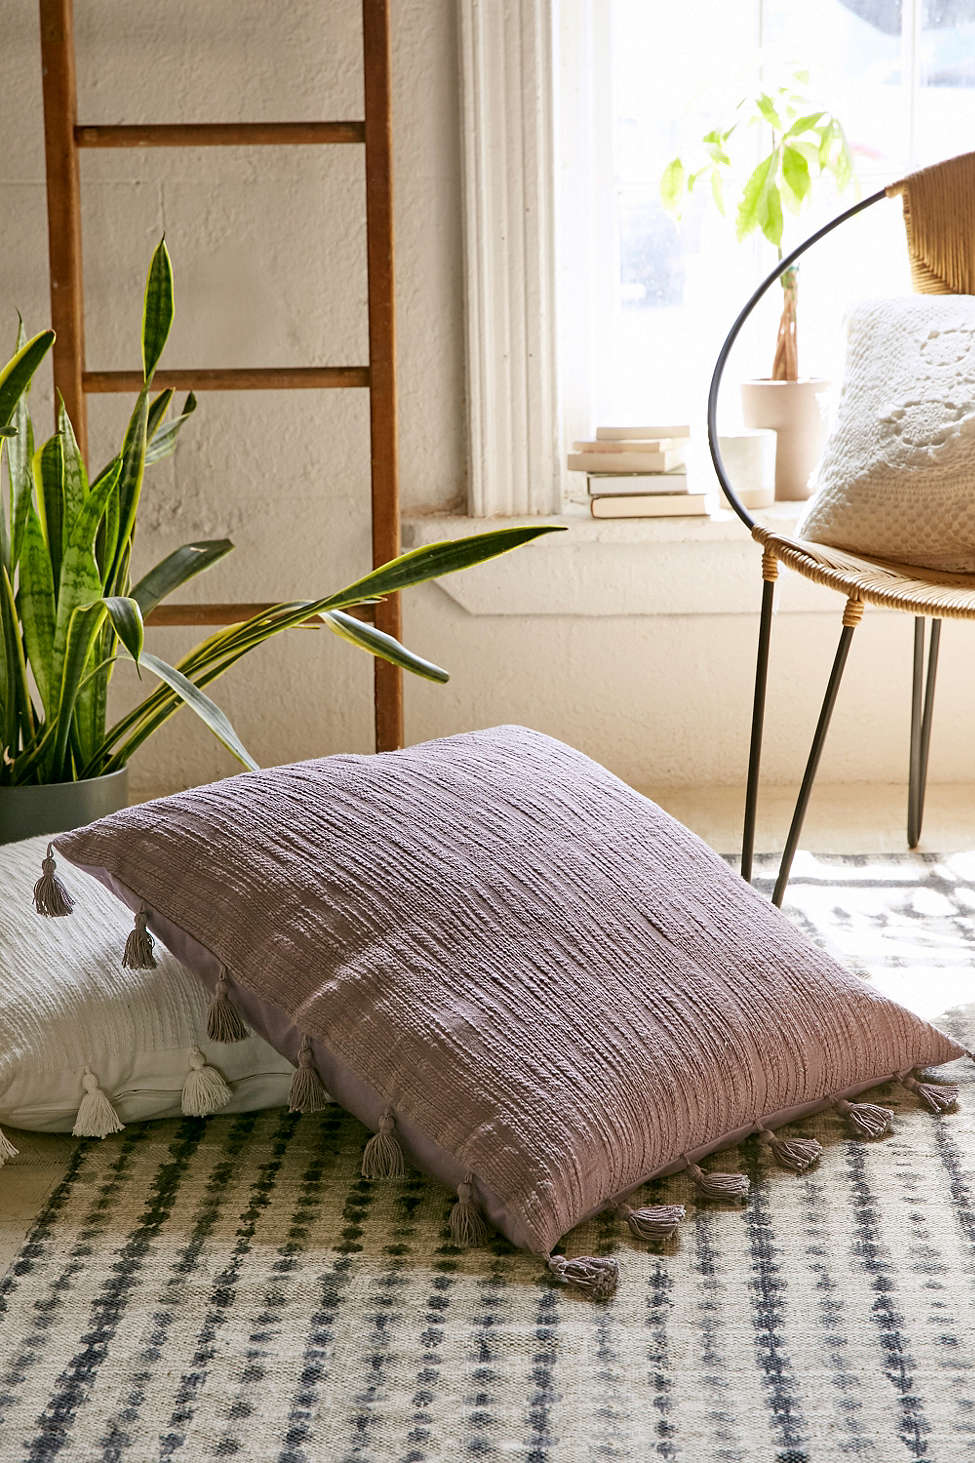 Eco Floor Pillows : 21 Chic And Cozy Floor Pillows - 101 Recycled Crafts